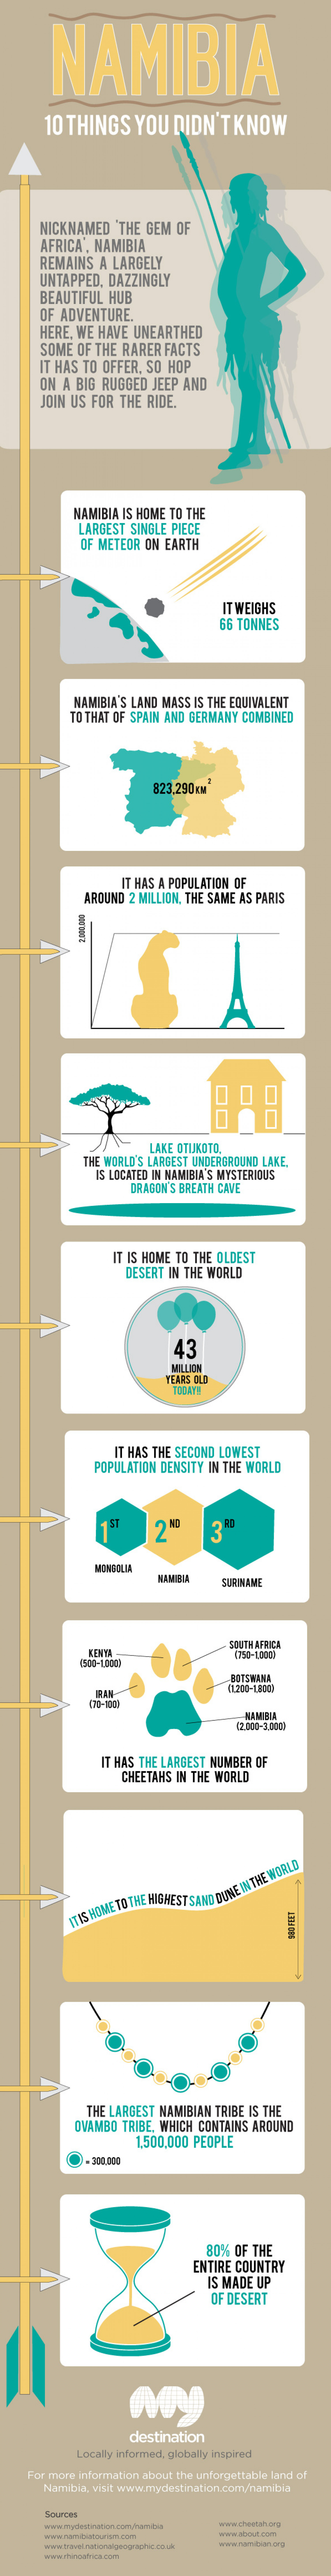 10 Things You Didn't Know About Namibia Infographic